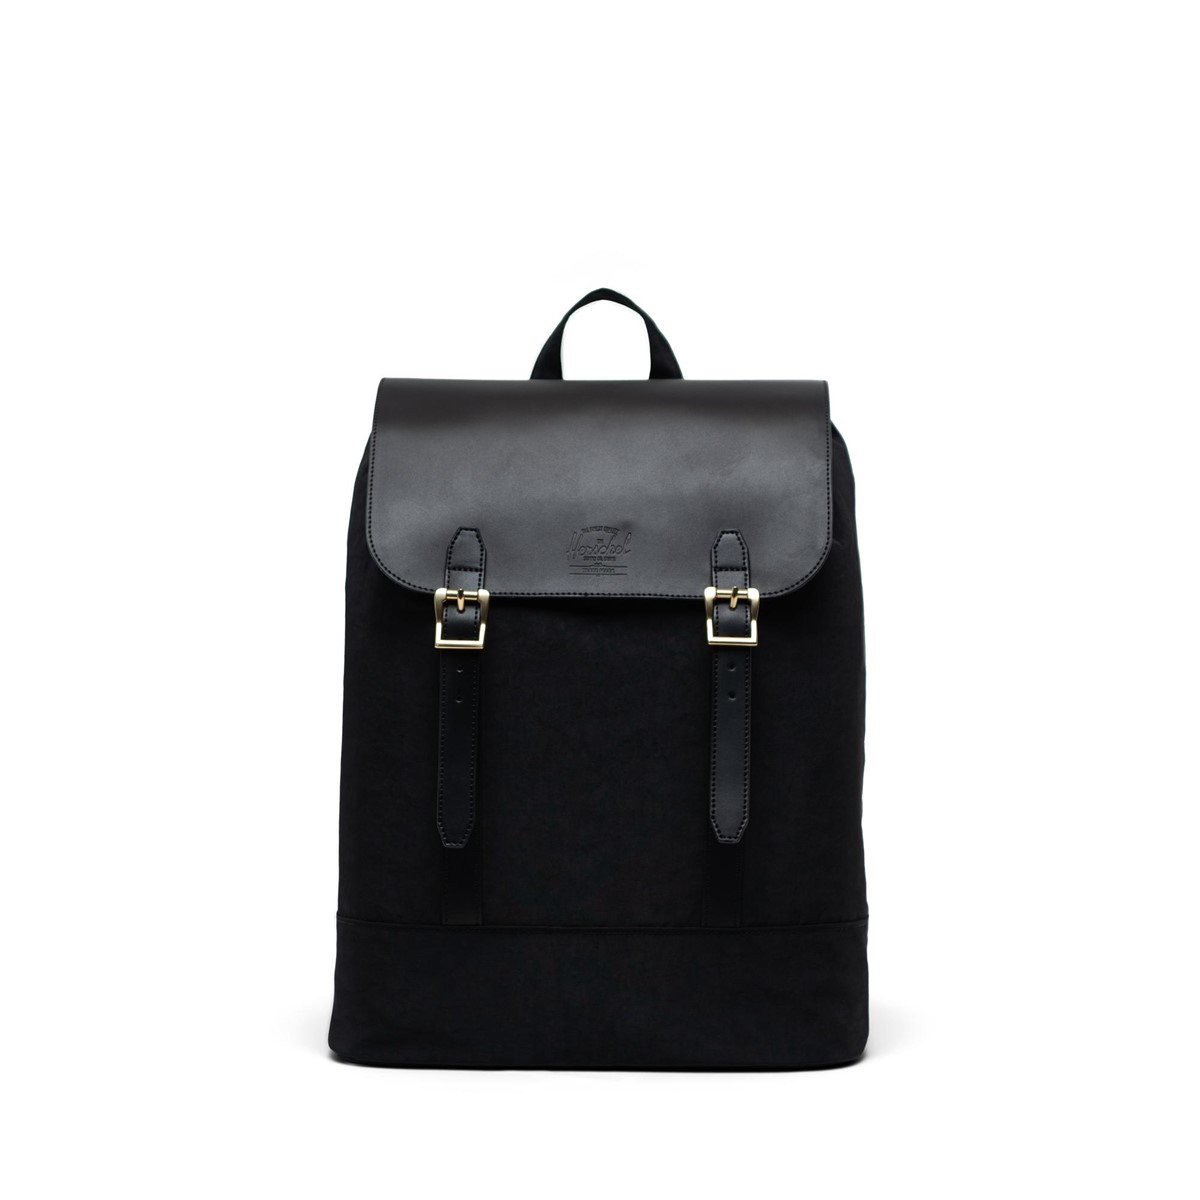 Orion Retreat Small Backpack in Black